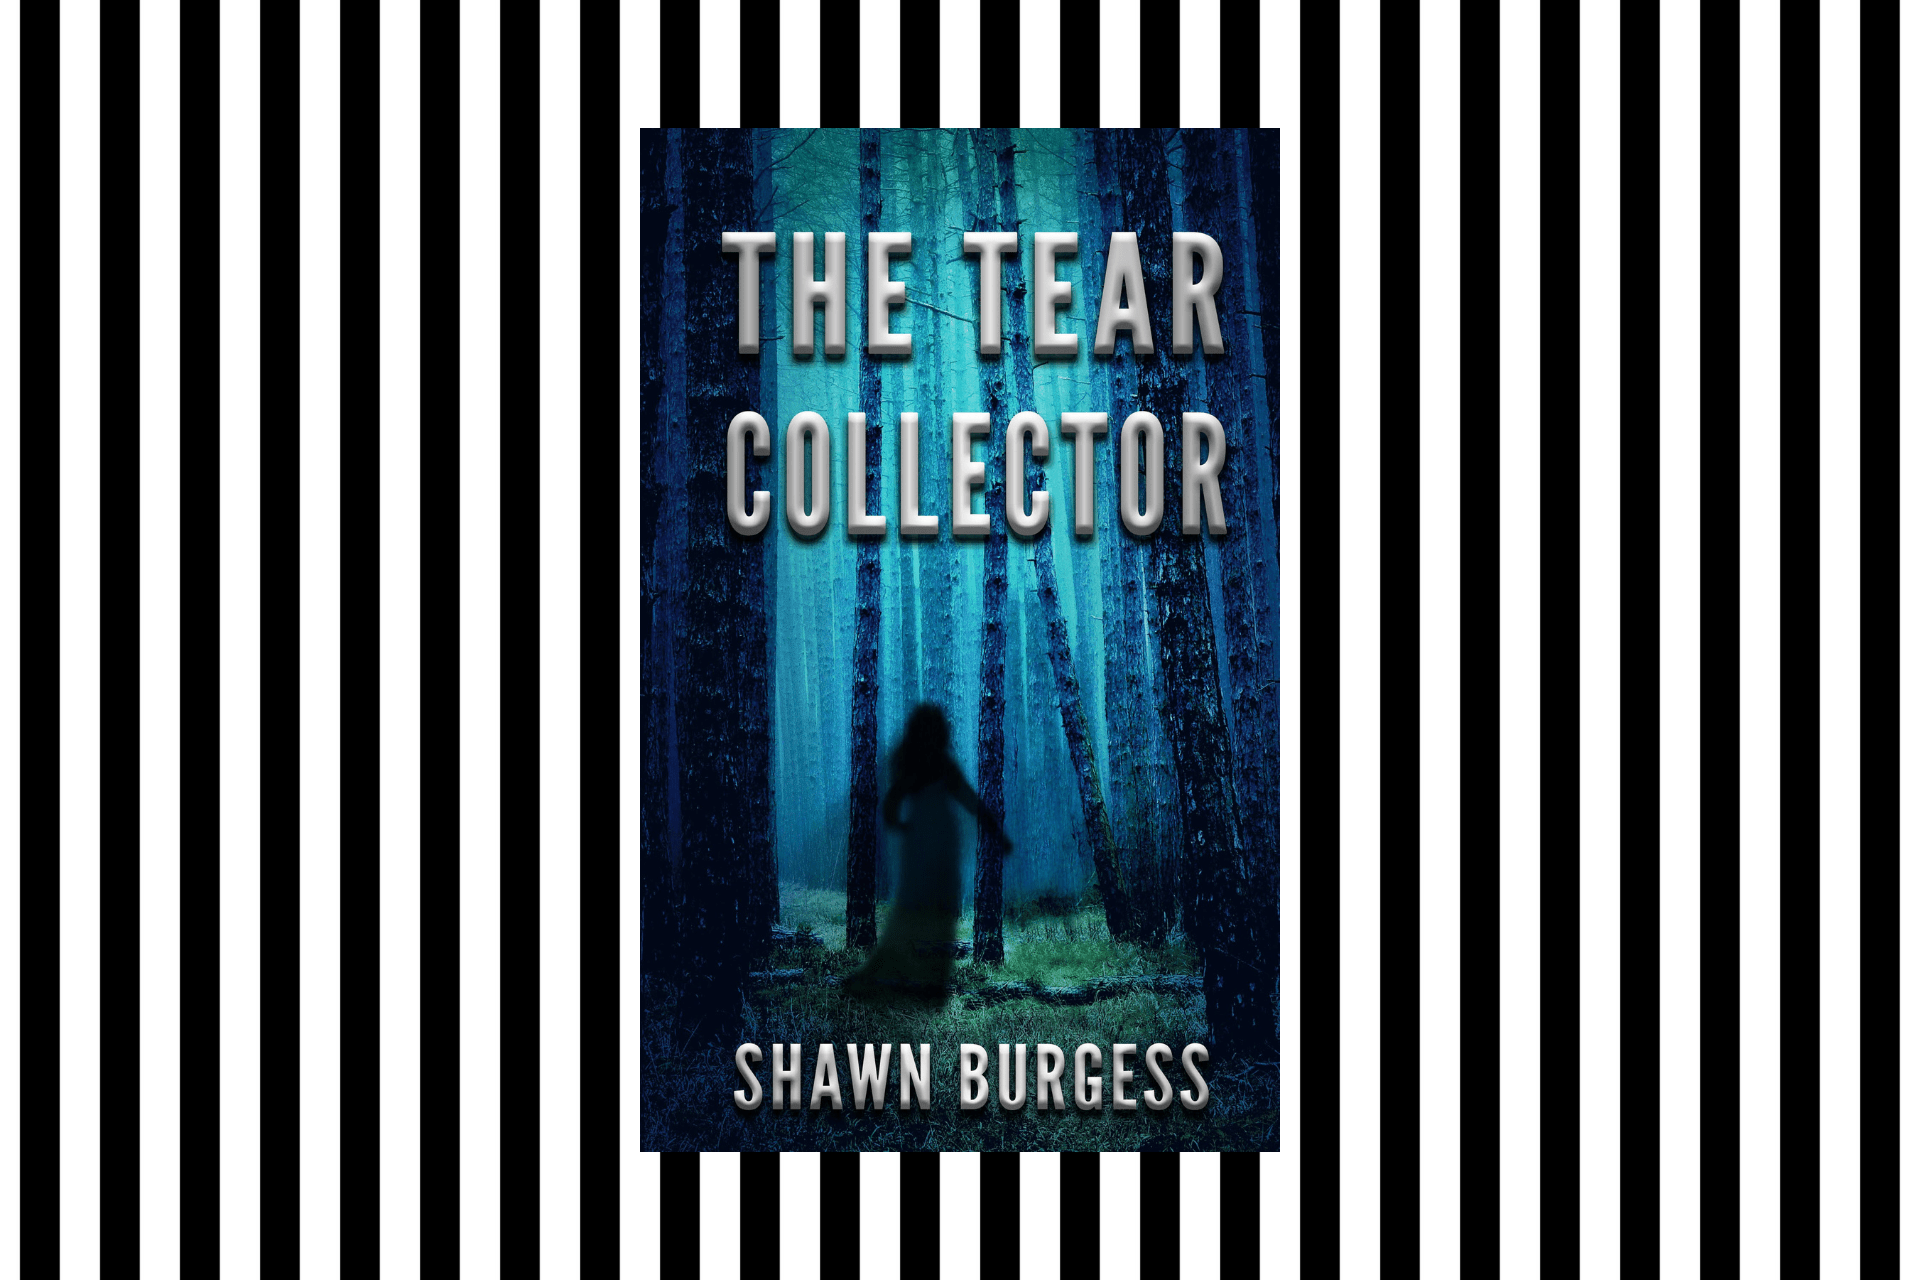 The cover of The Tear Collector by Shawn Burgess